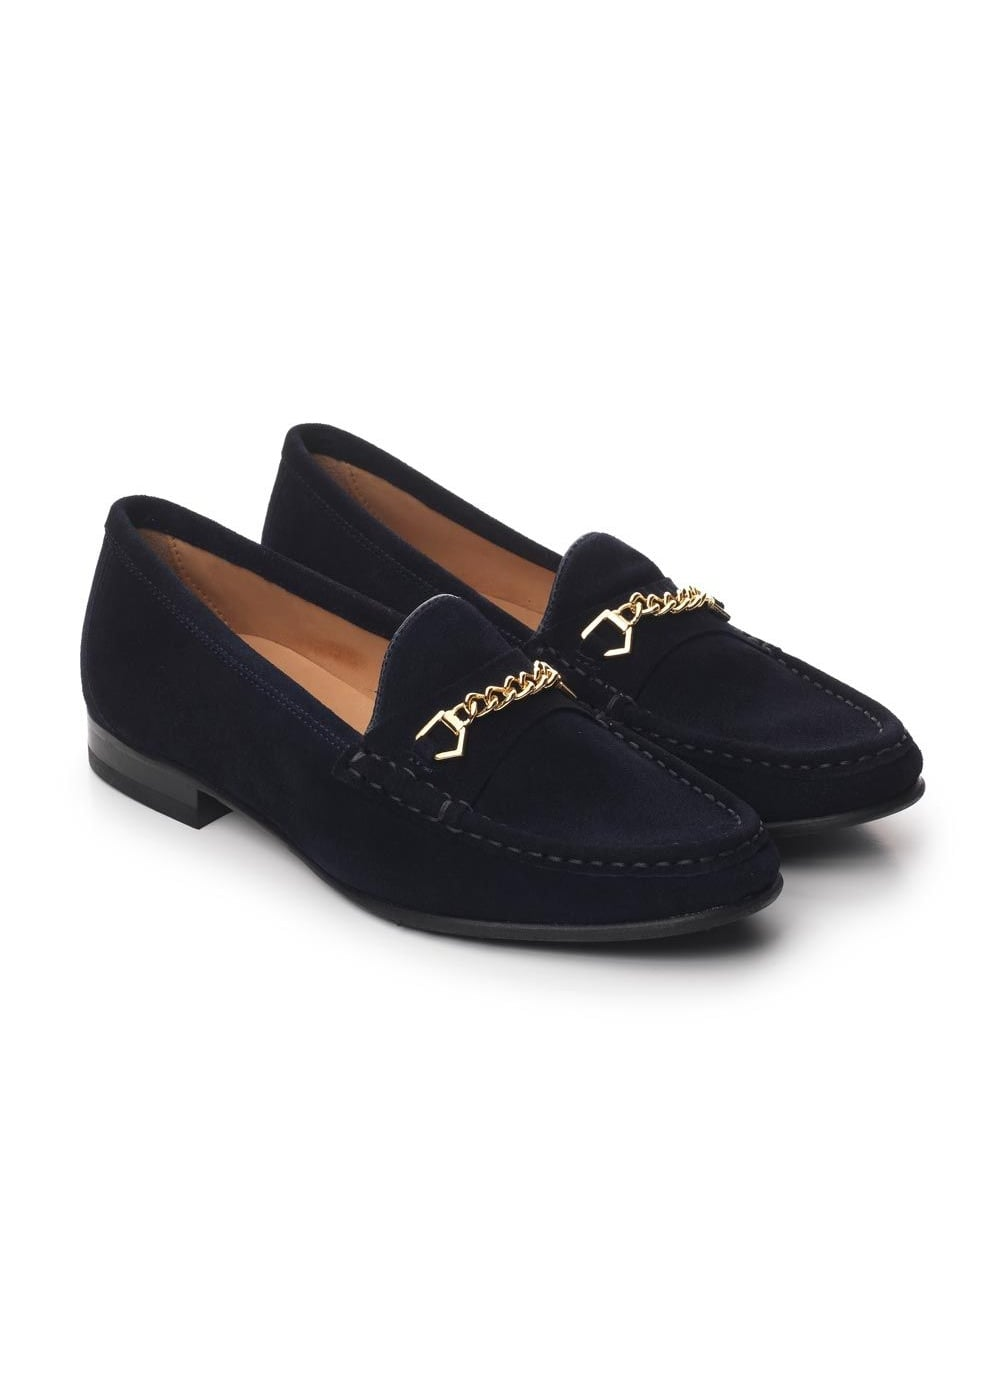 Fairfax And Favor Apsley Suede Loafers Ladies From A Hume Uk D Island Shoes Casual Comfort Black